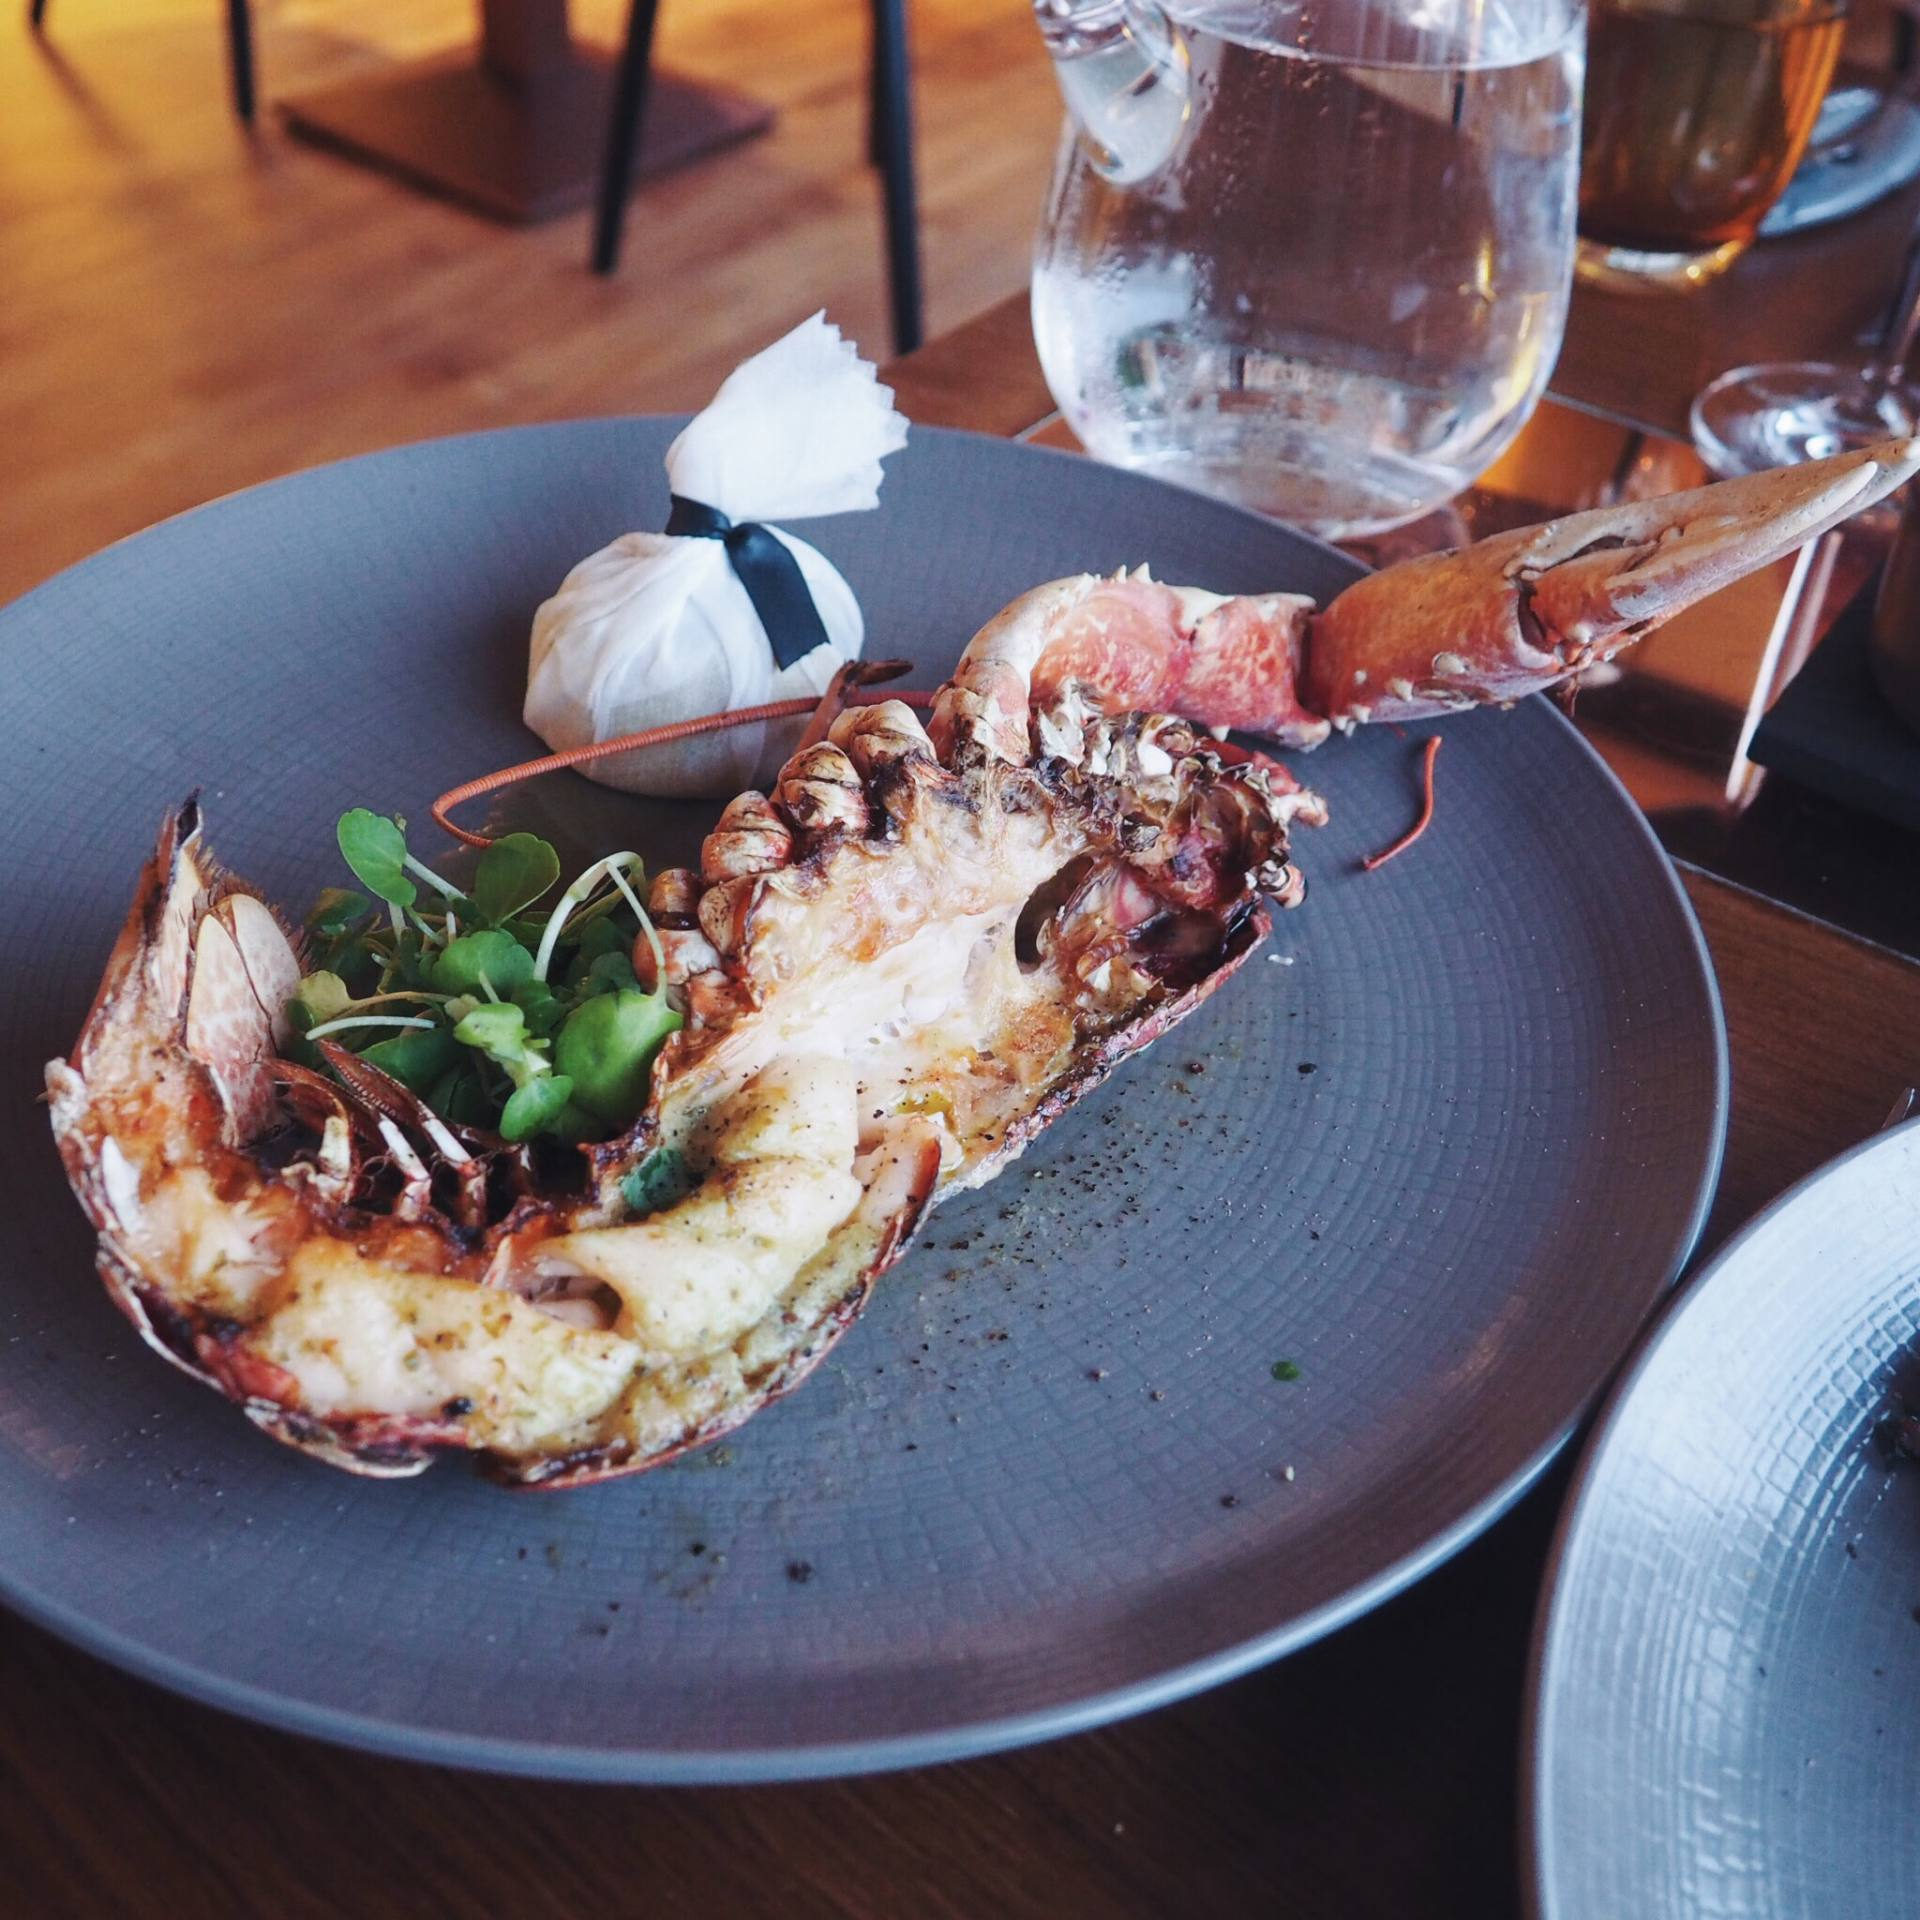 Grilled lobster tail with herb butter